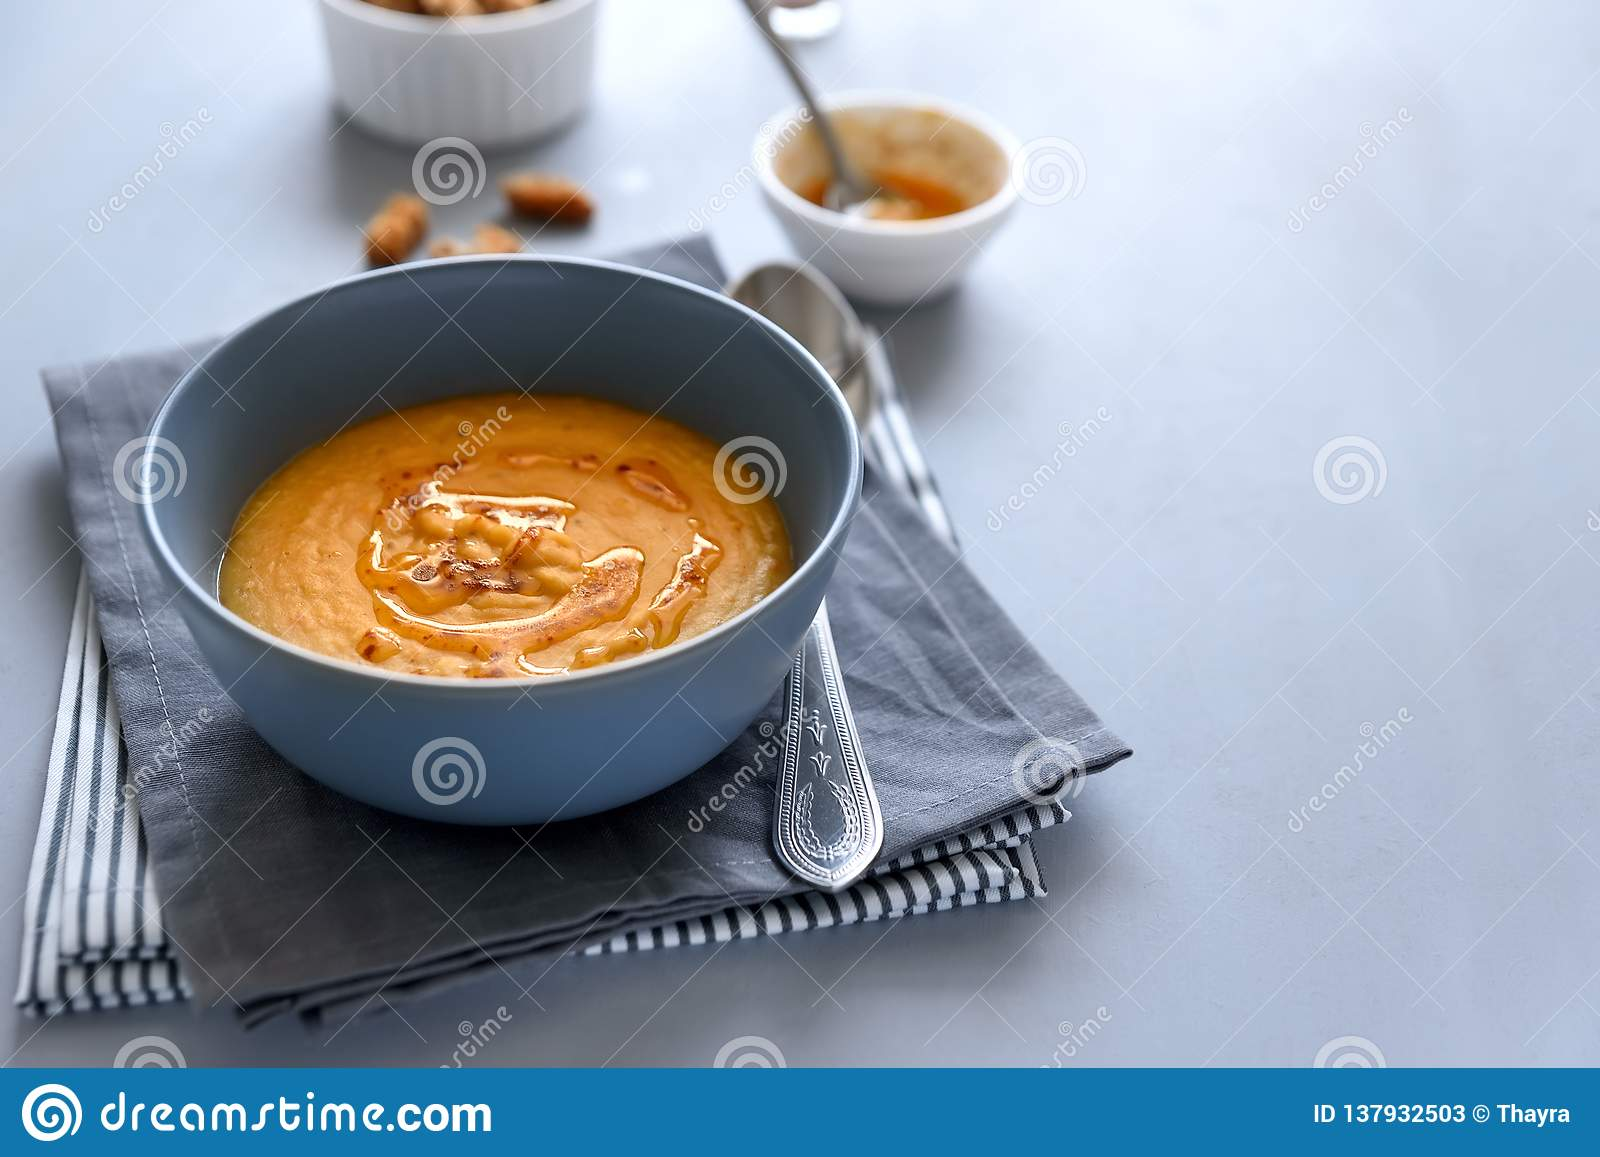 Bowl of red lentil soup on gray wooden background. Vegetarian food concept